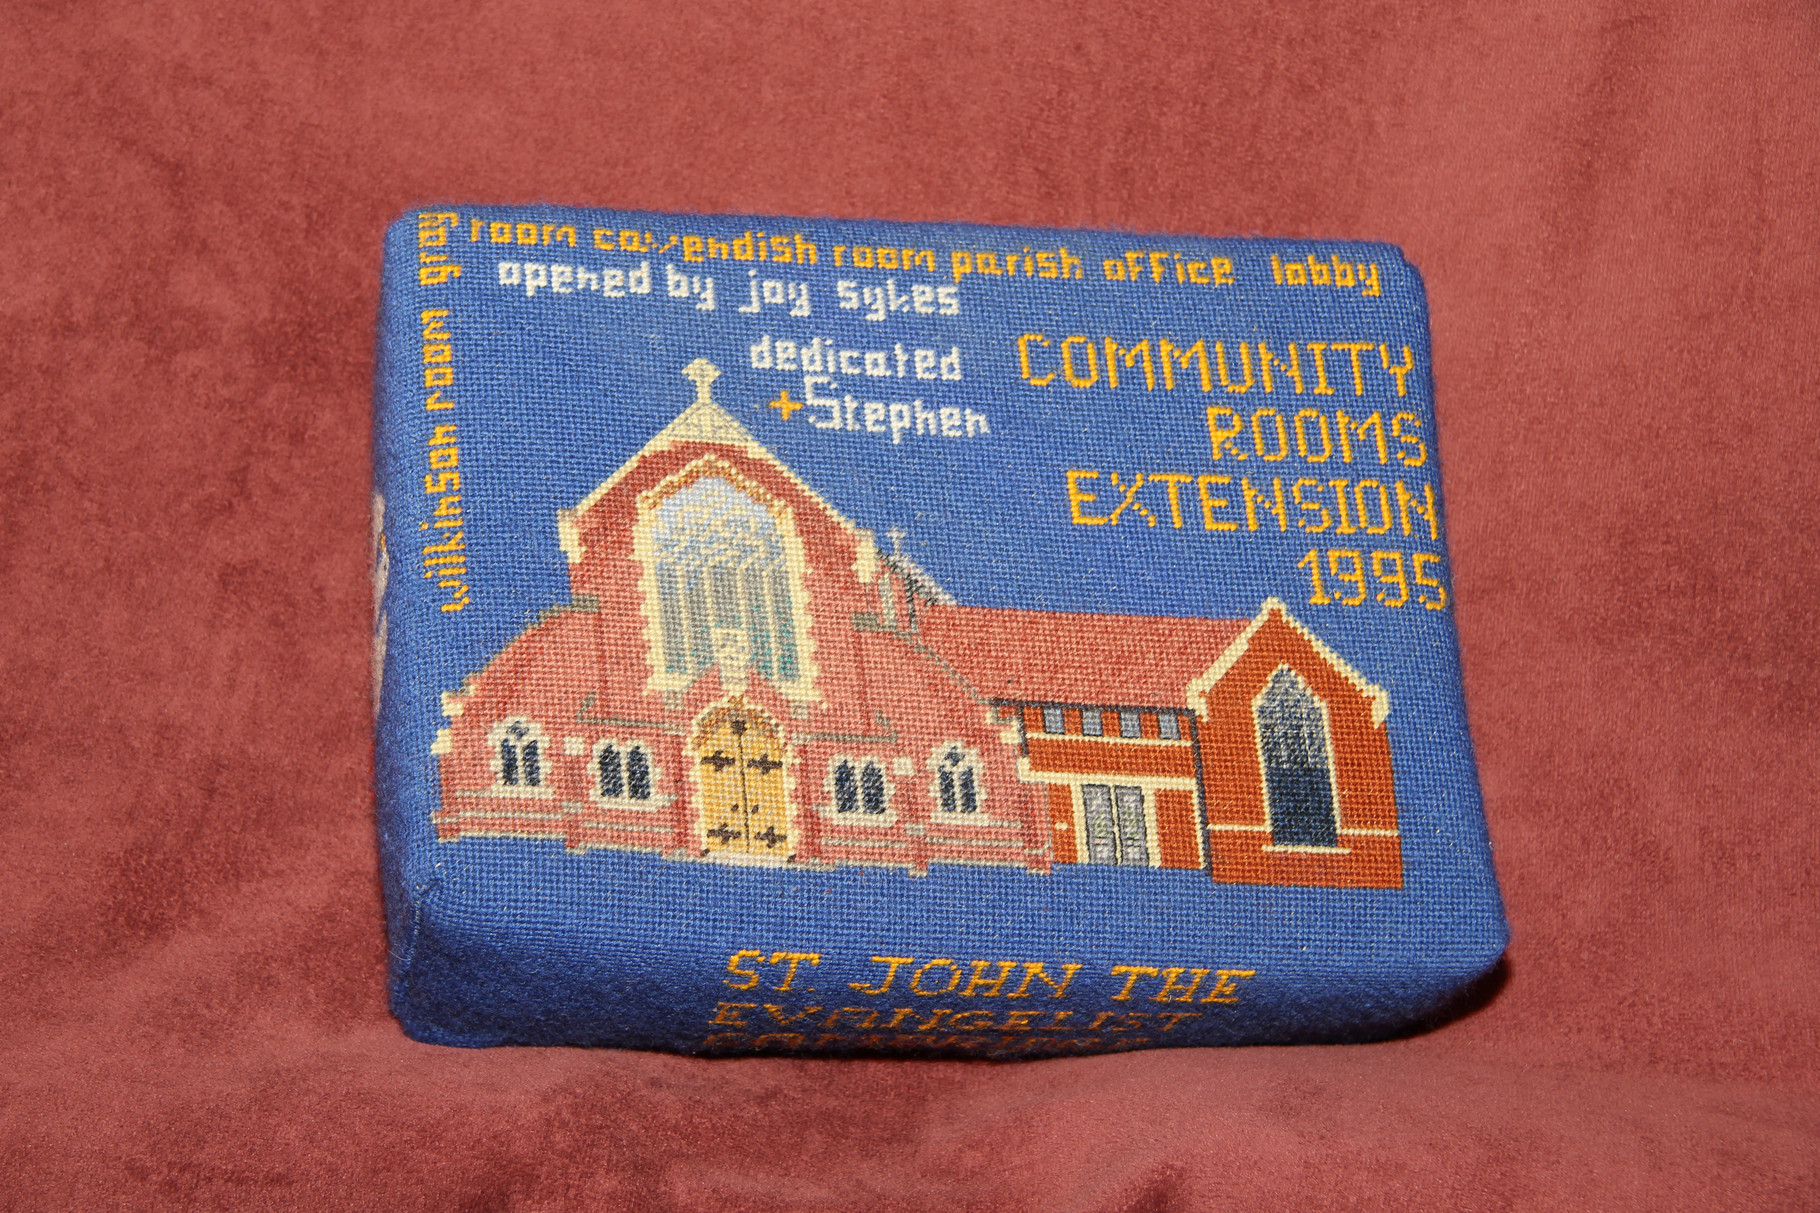 50. Community Rooms Extension 1995  Opening and dedication by Joy and Bishop Stephen Sykes – donated and worked by   Bridget Garton